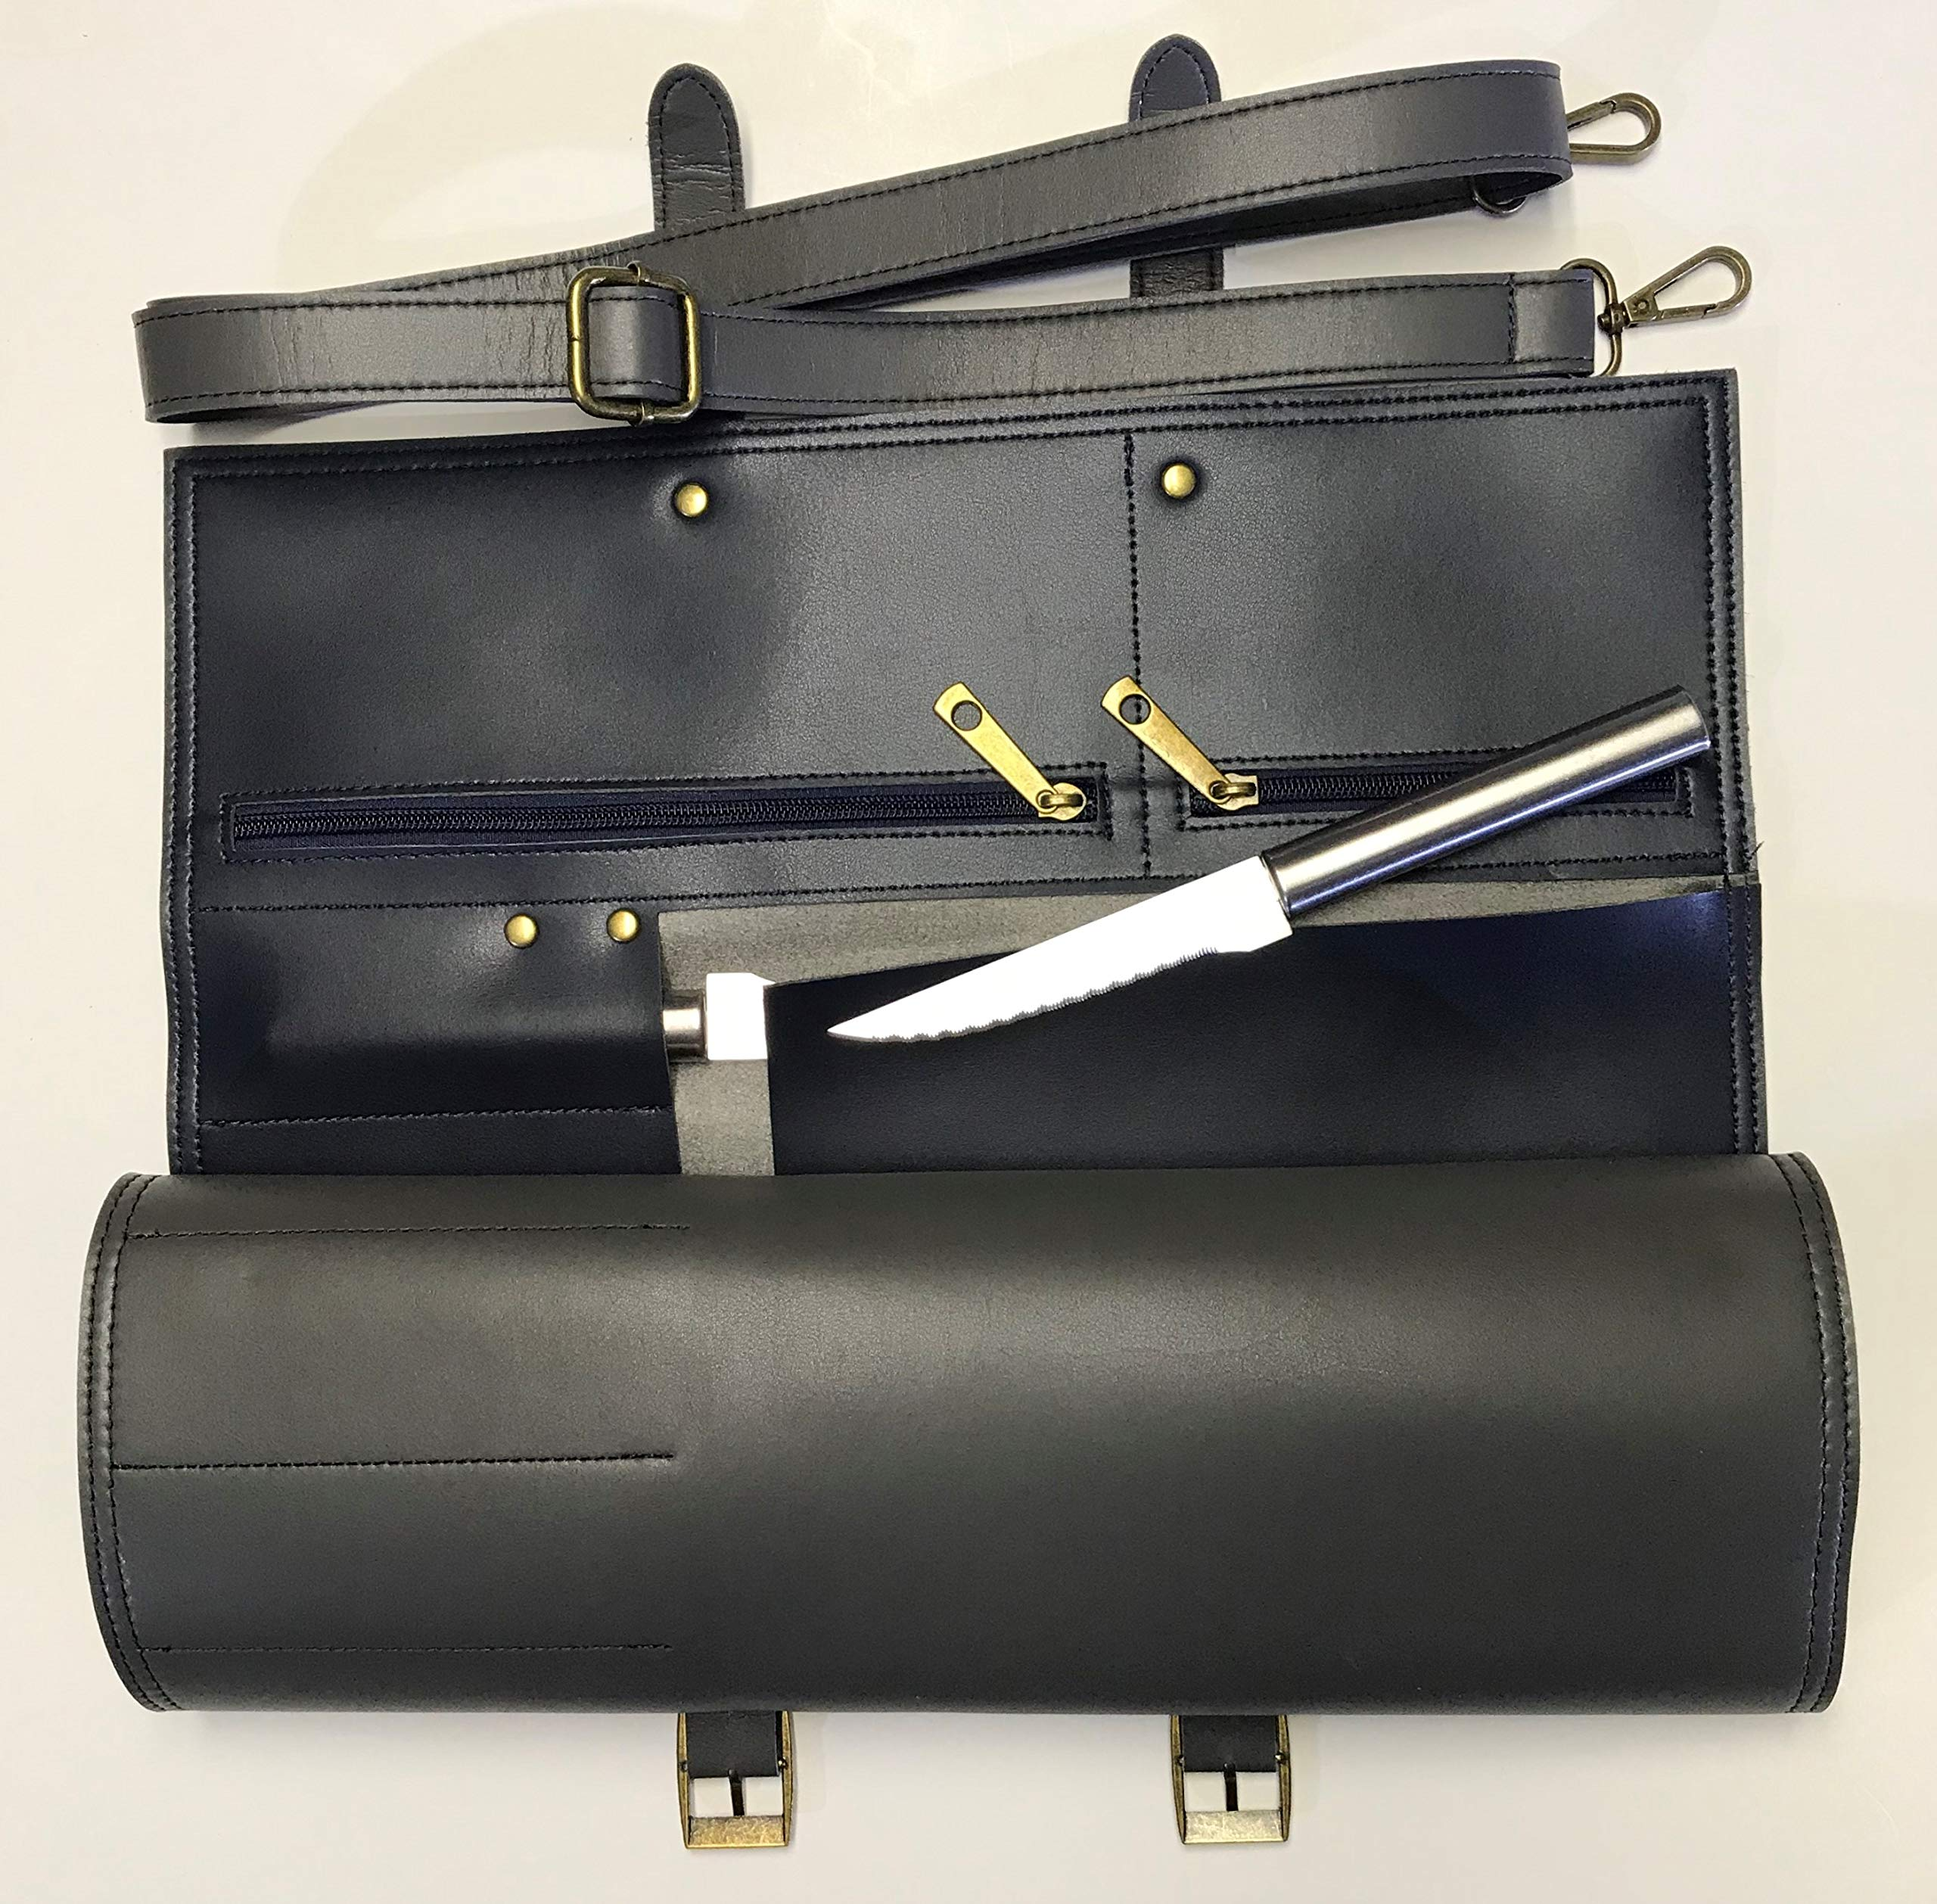 MiM Houston Chef Knife Bag | Large Chef Knife Roll Bag | Fine Leather | W/Business Card Slot | Gray